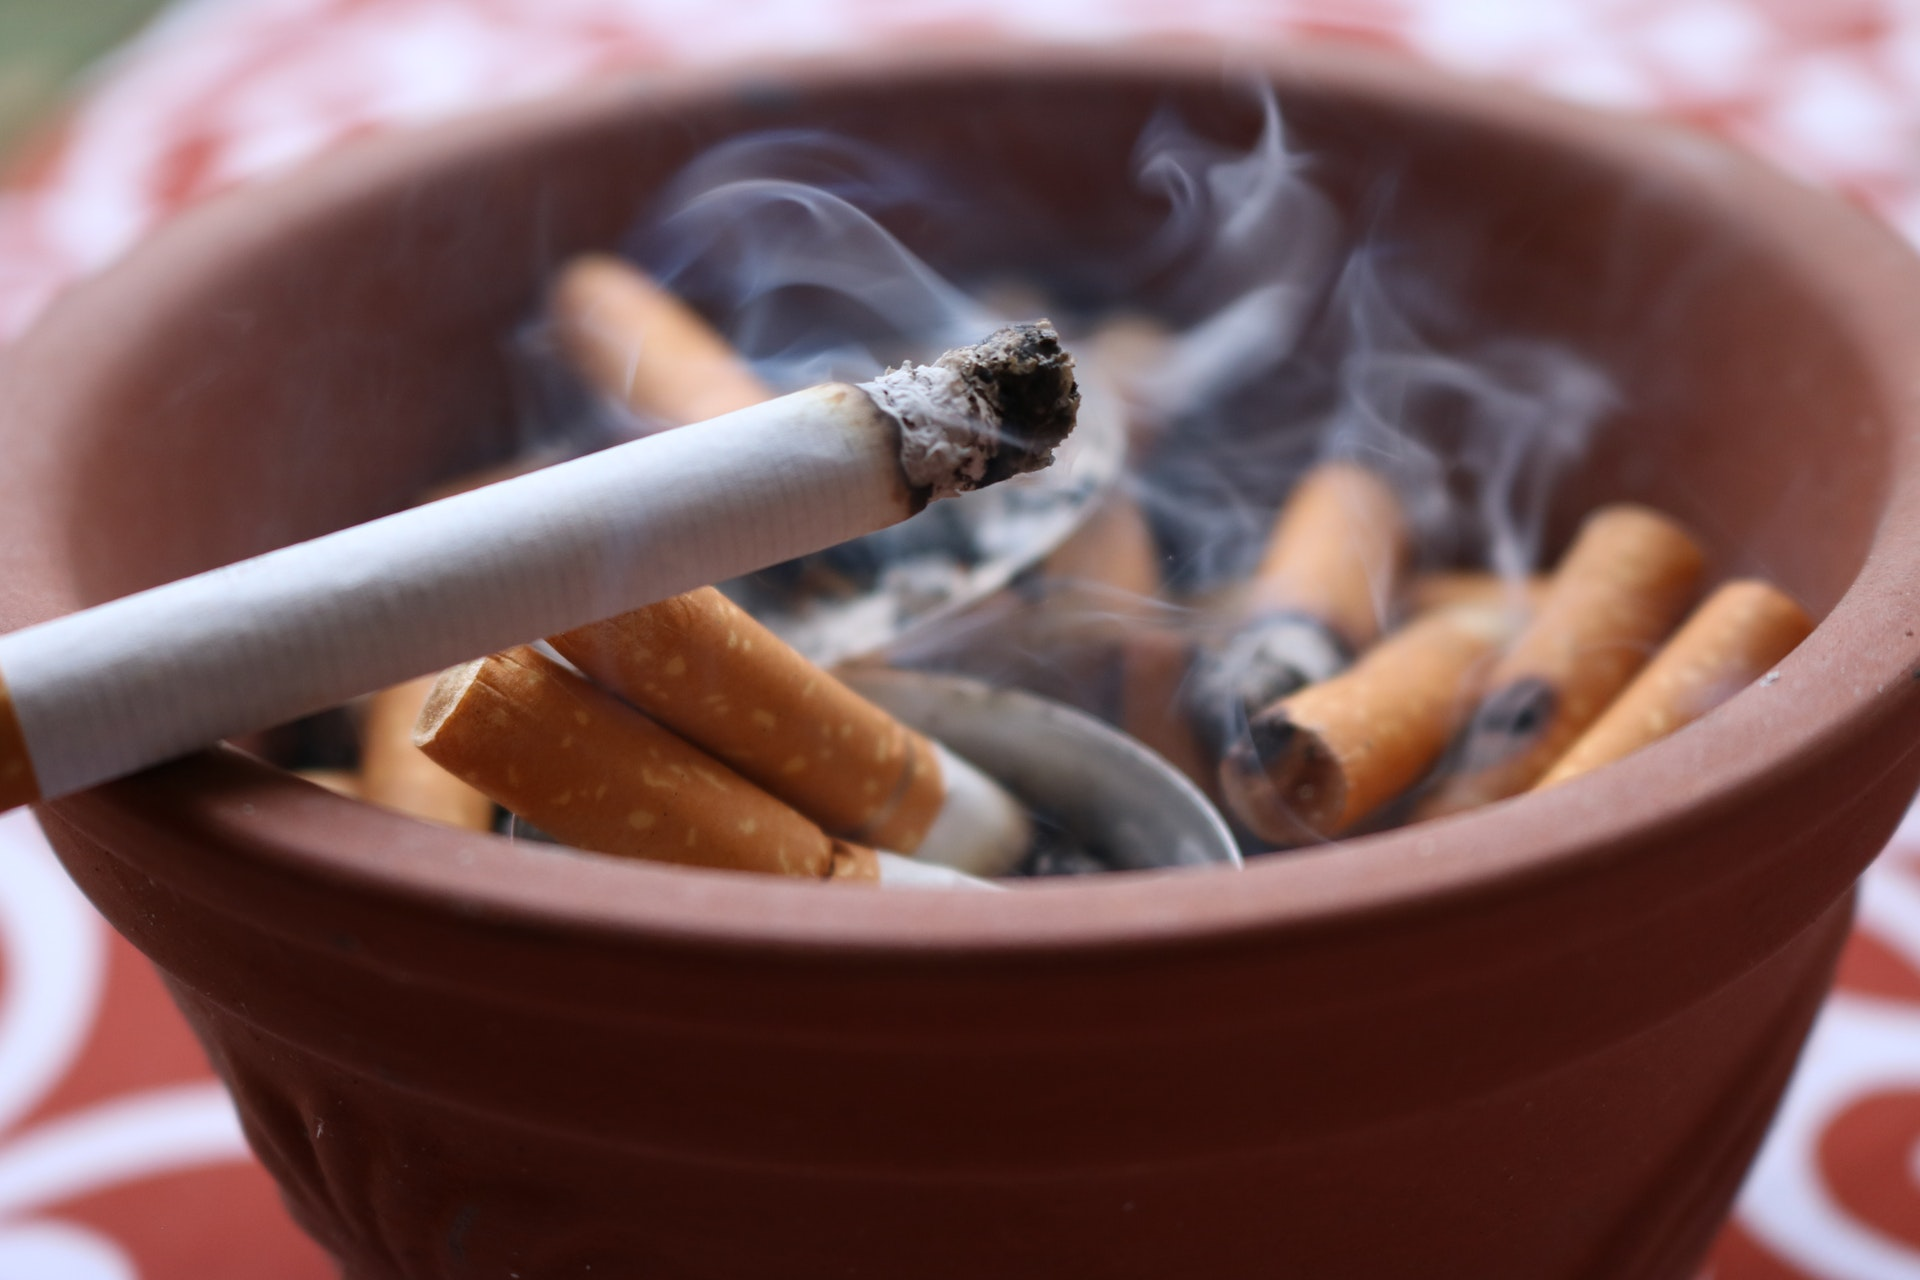 A ceramic ashtray full of cigarette butts and a lit cigarette on the edge - is it illegal to smoke in your car in australia is a question we aim to answer